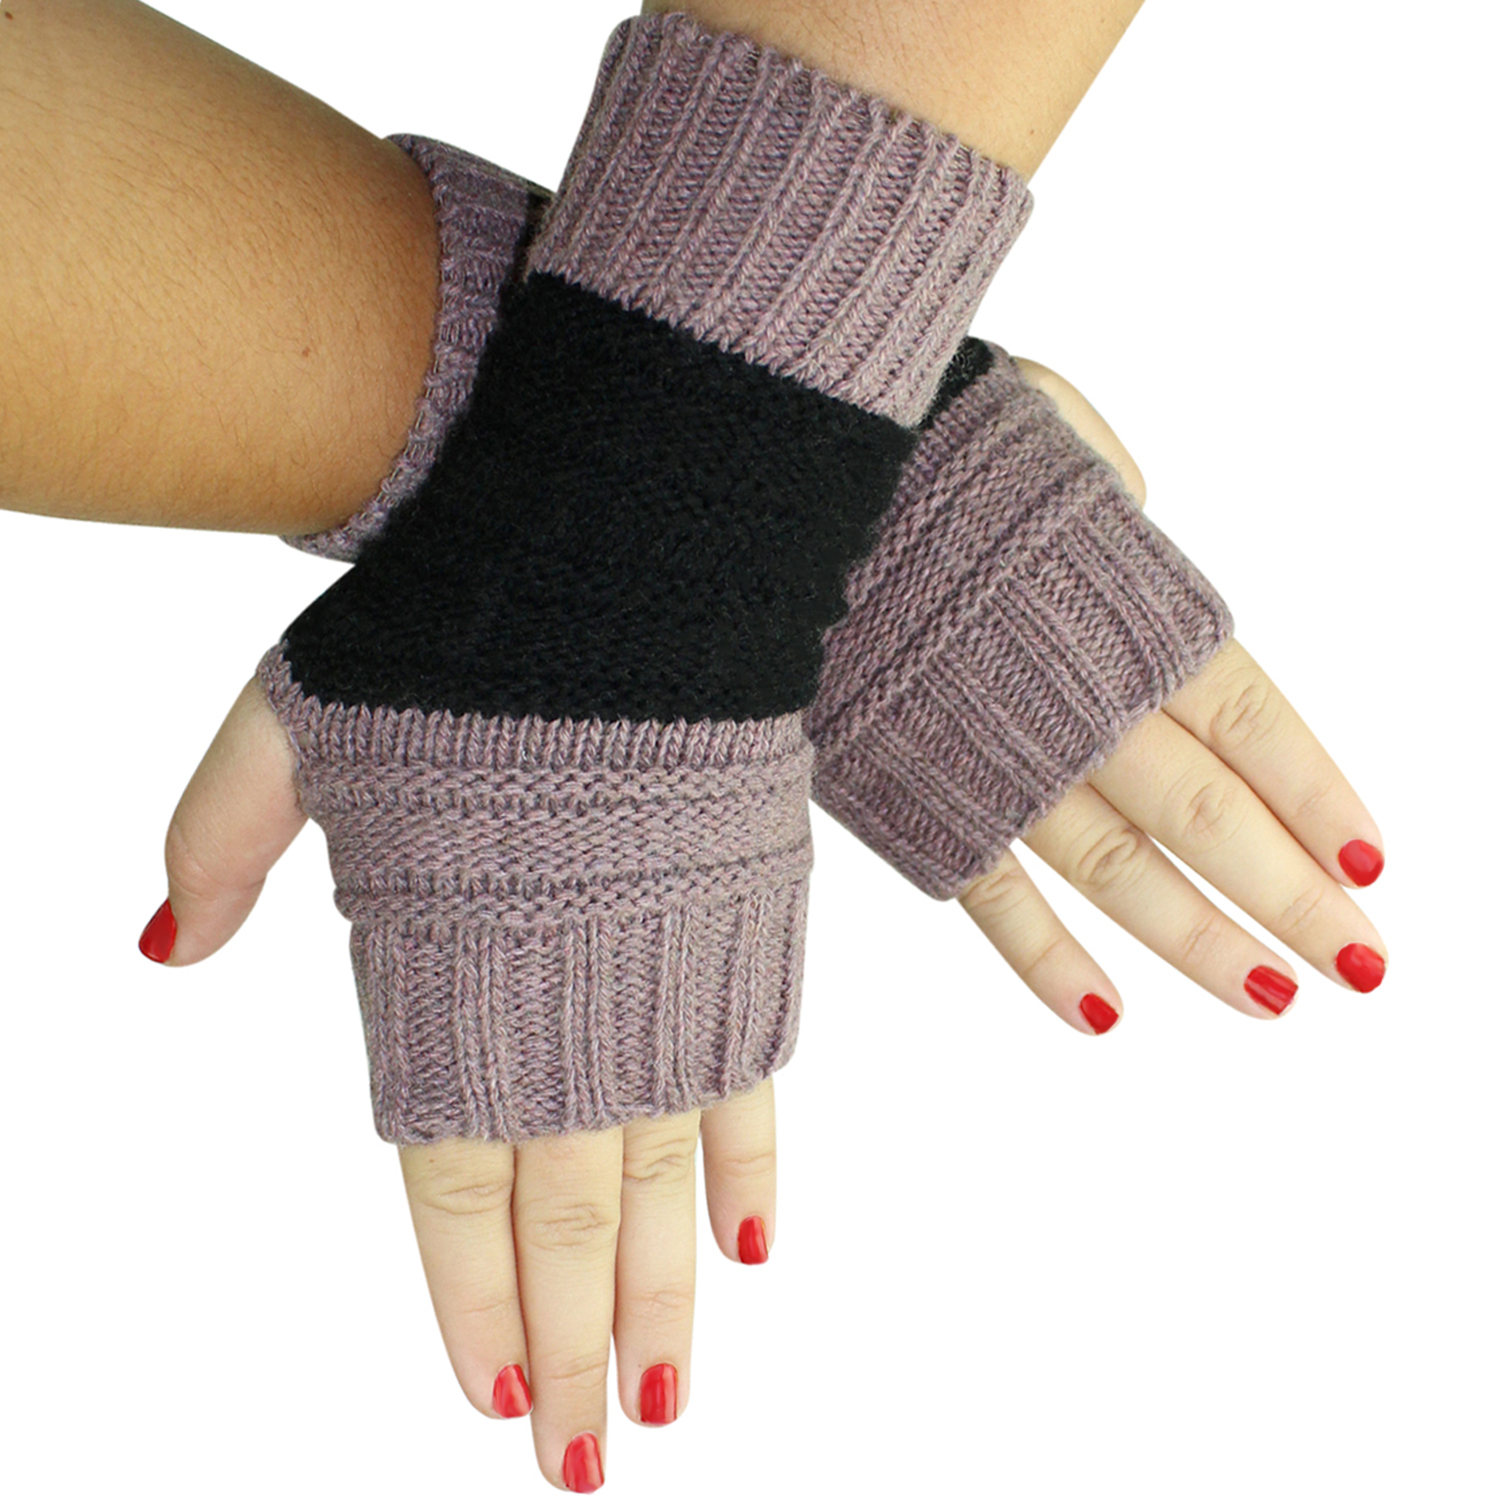 Block Stripe Knit Fingerless Arm Warmer Gloves